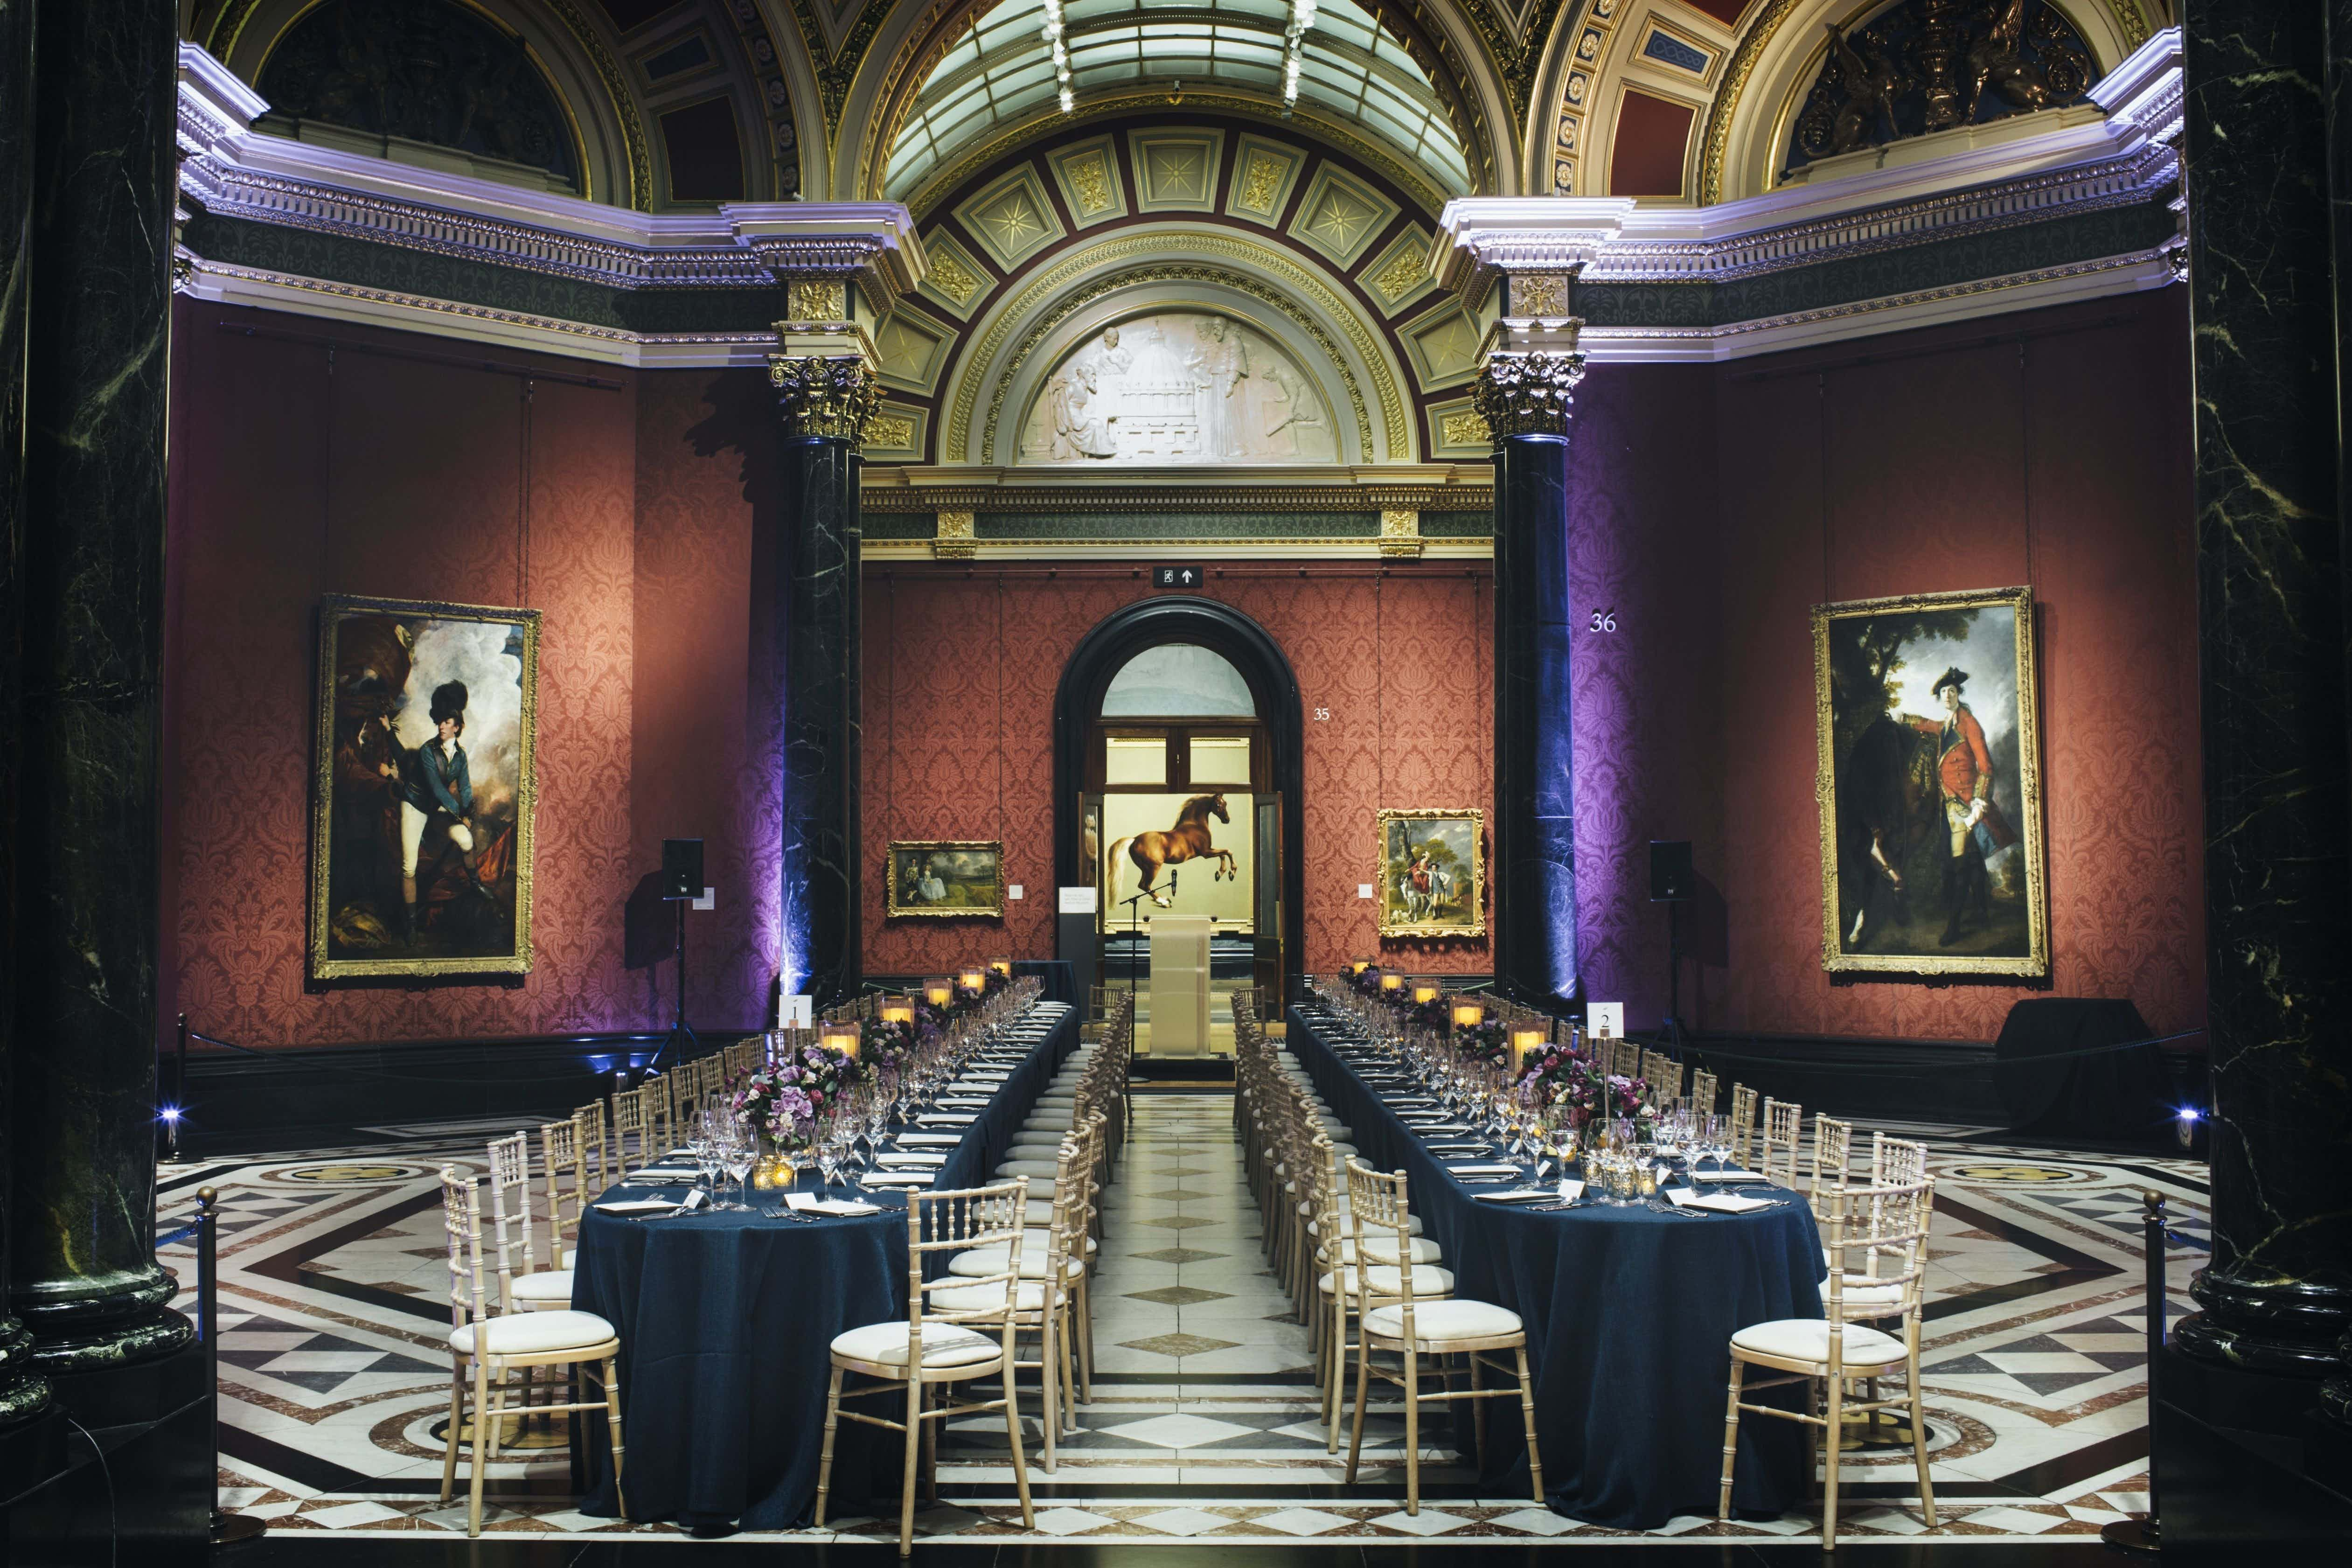 The Barry Rooms, The National Gallery